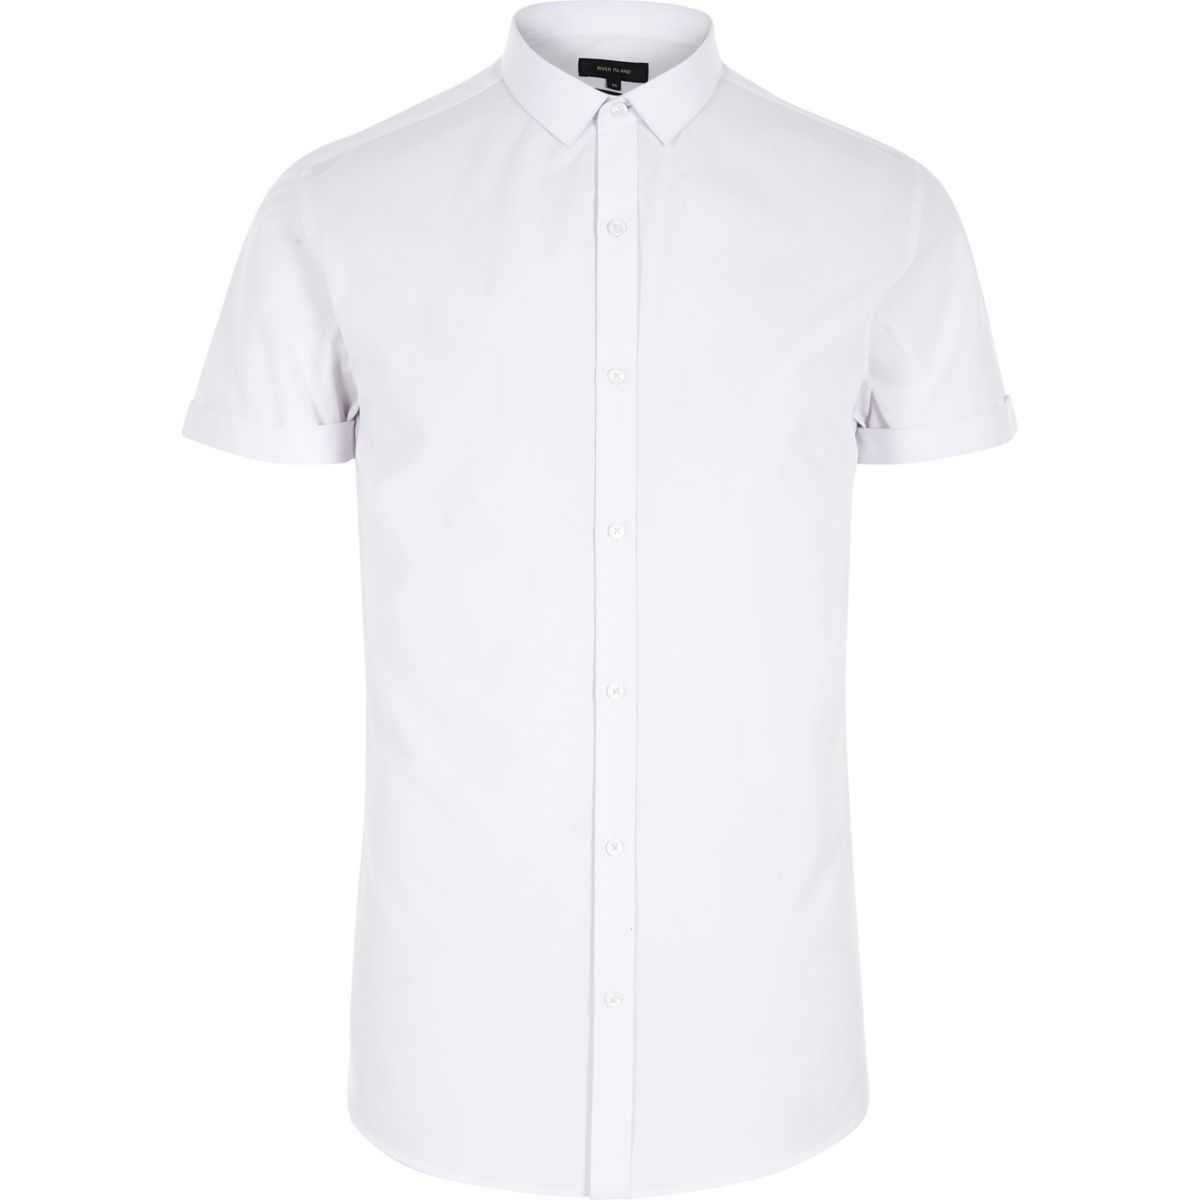 White short sleeve slim fit shirt shirts sale men for Mens slim fit short sleeve shirt